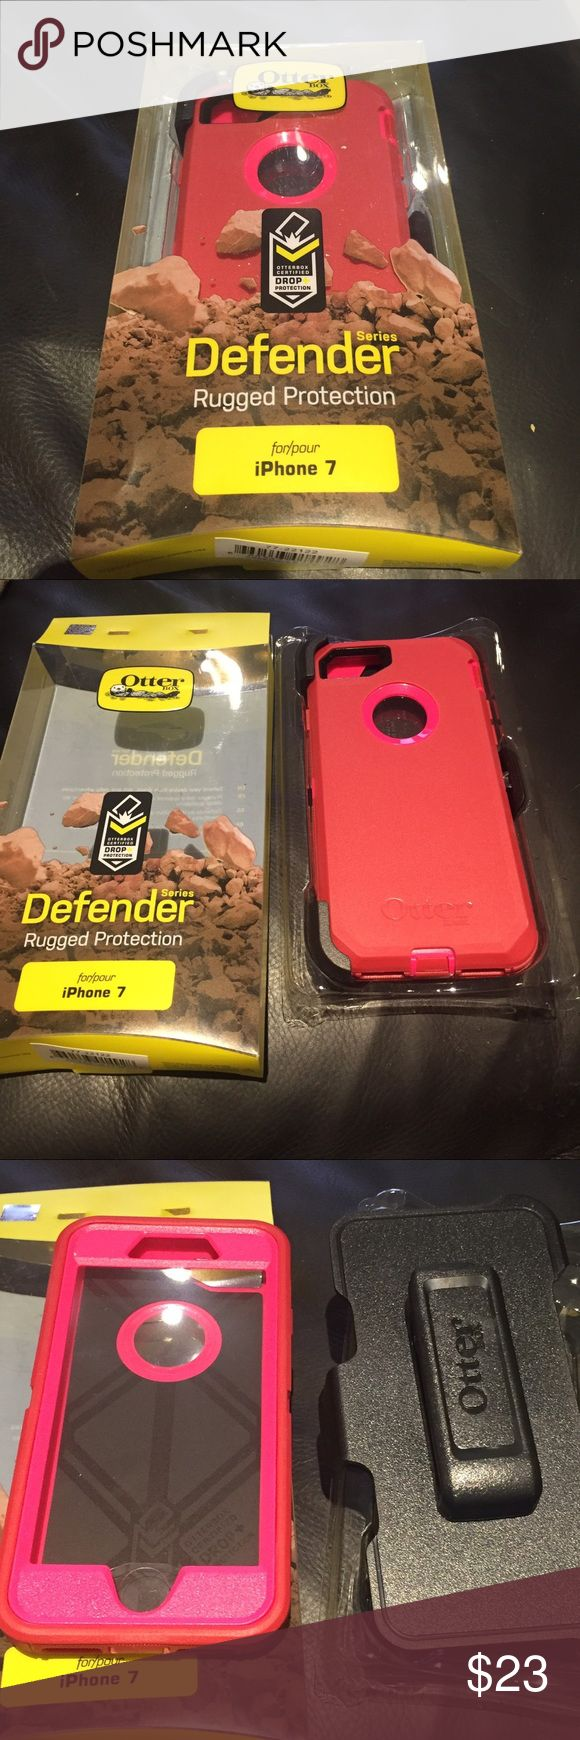 OEM Otterbox defender case for iPhone 7 Otterbox defender case for iPhone 7, brand new in retail package OtterBox Accessories Phone Cases